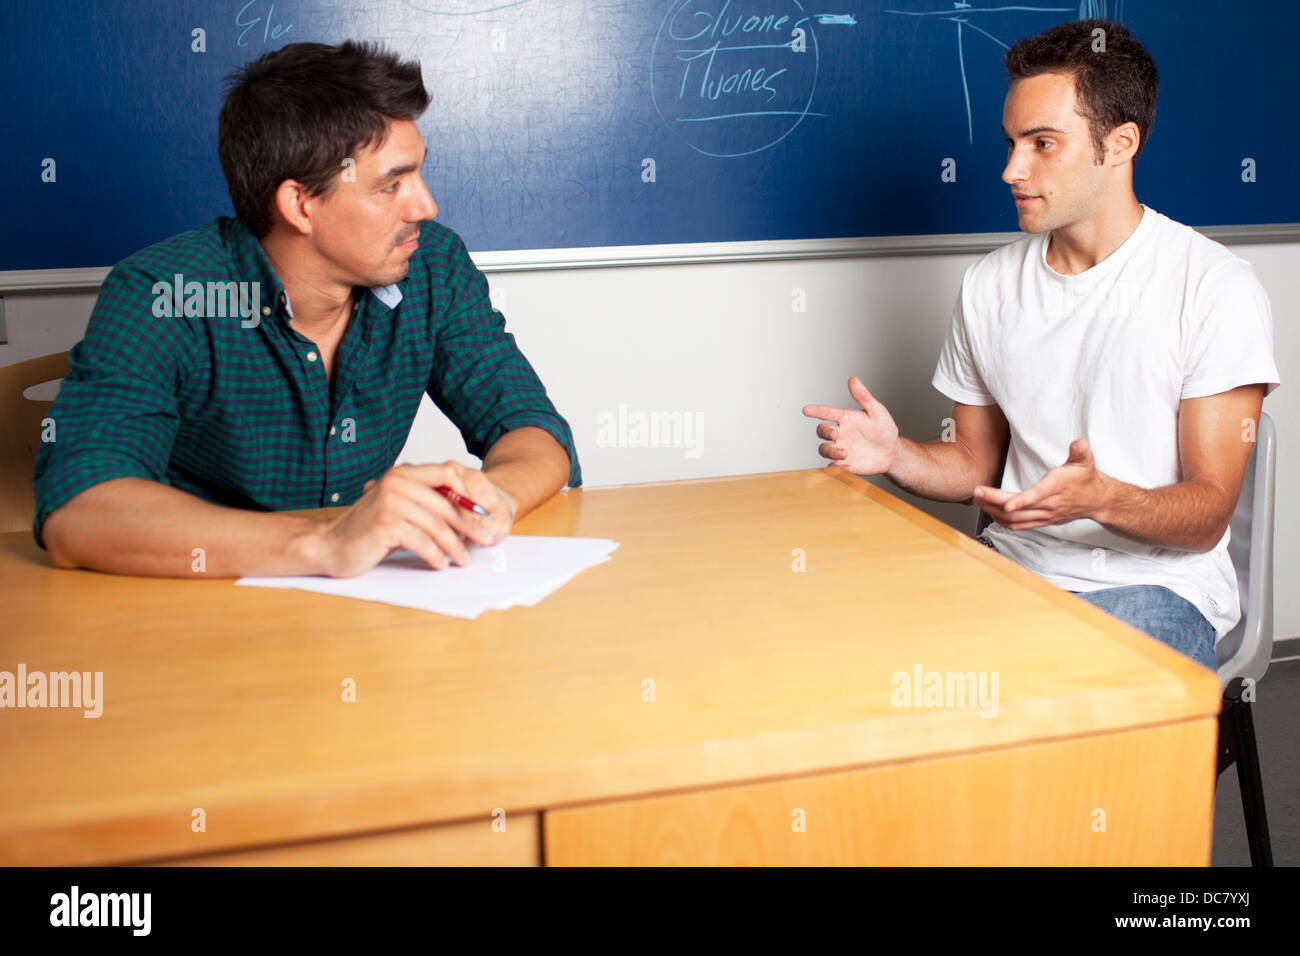 Professor with student in consultation - Stock Image